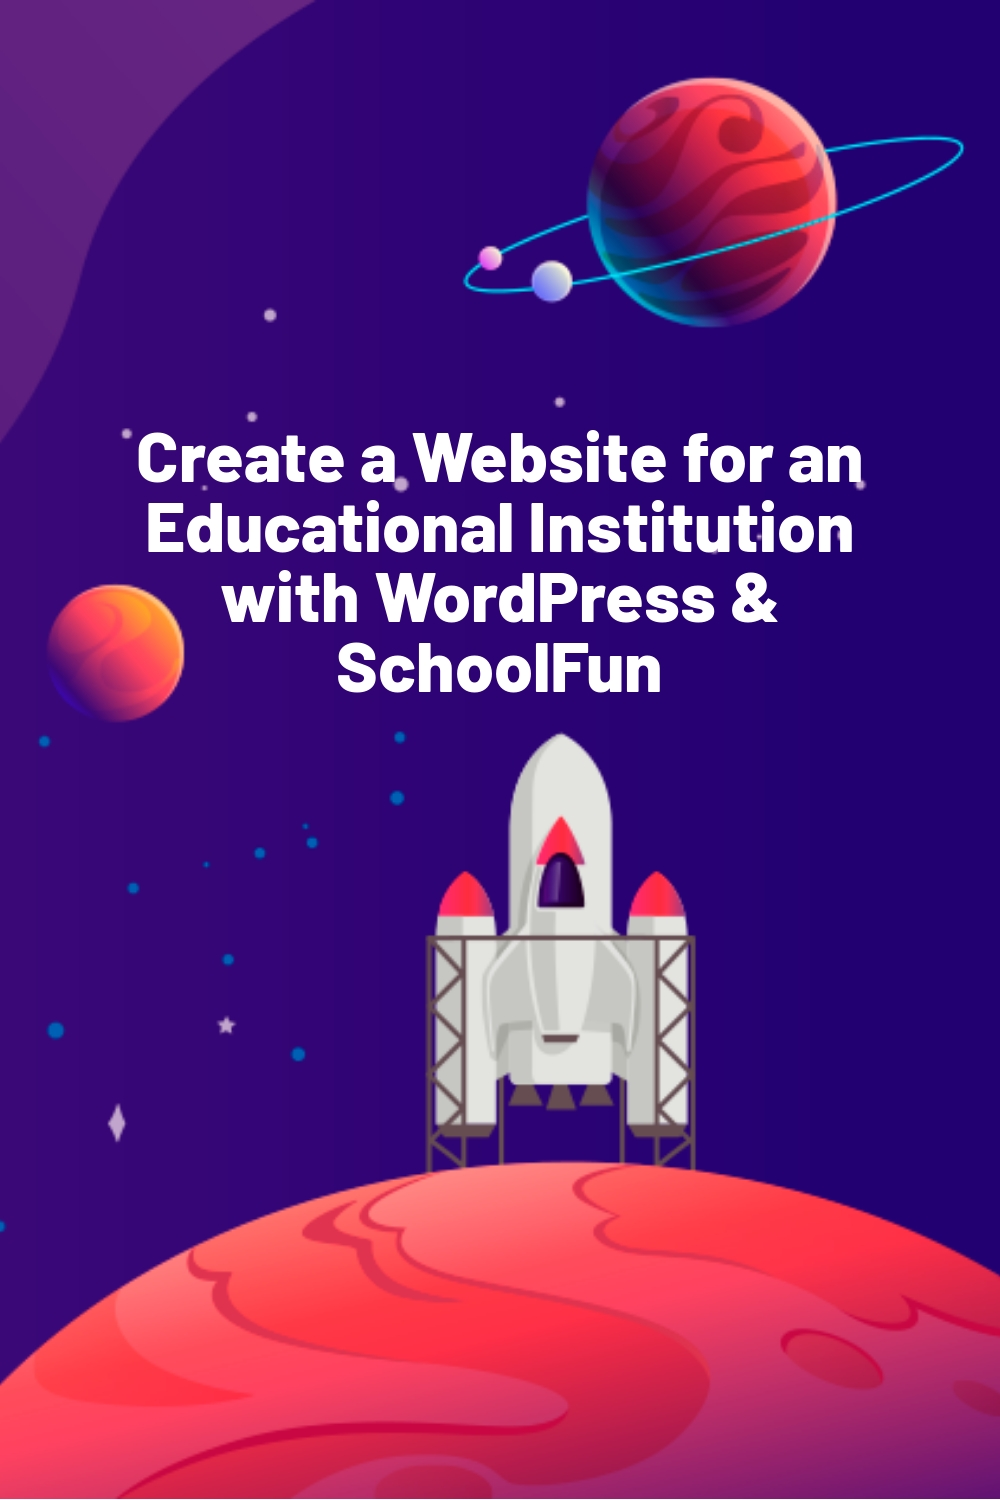 Create a Website for an Educational Institution with WordPress & SchoolFun